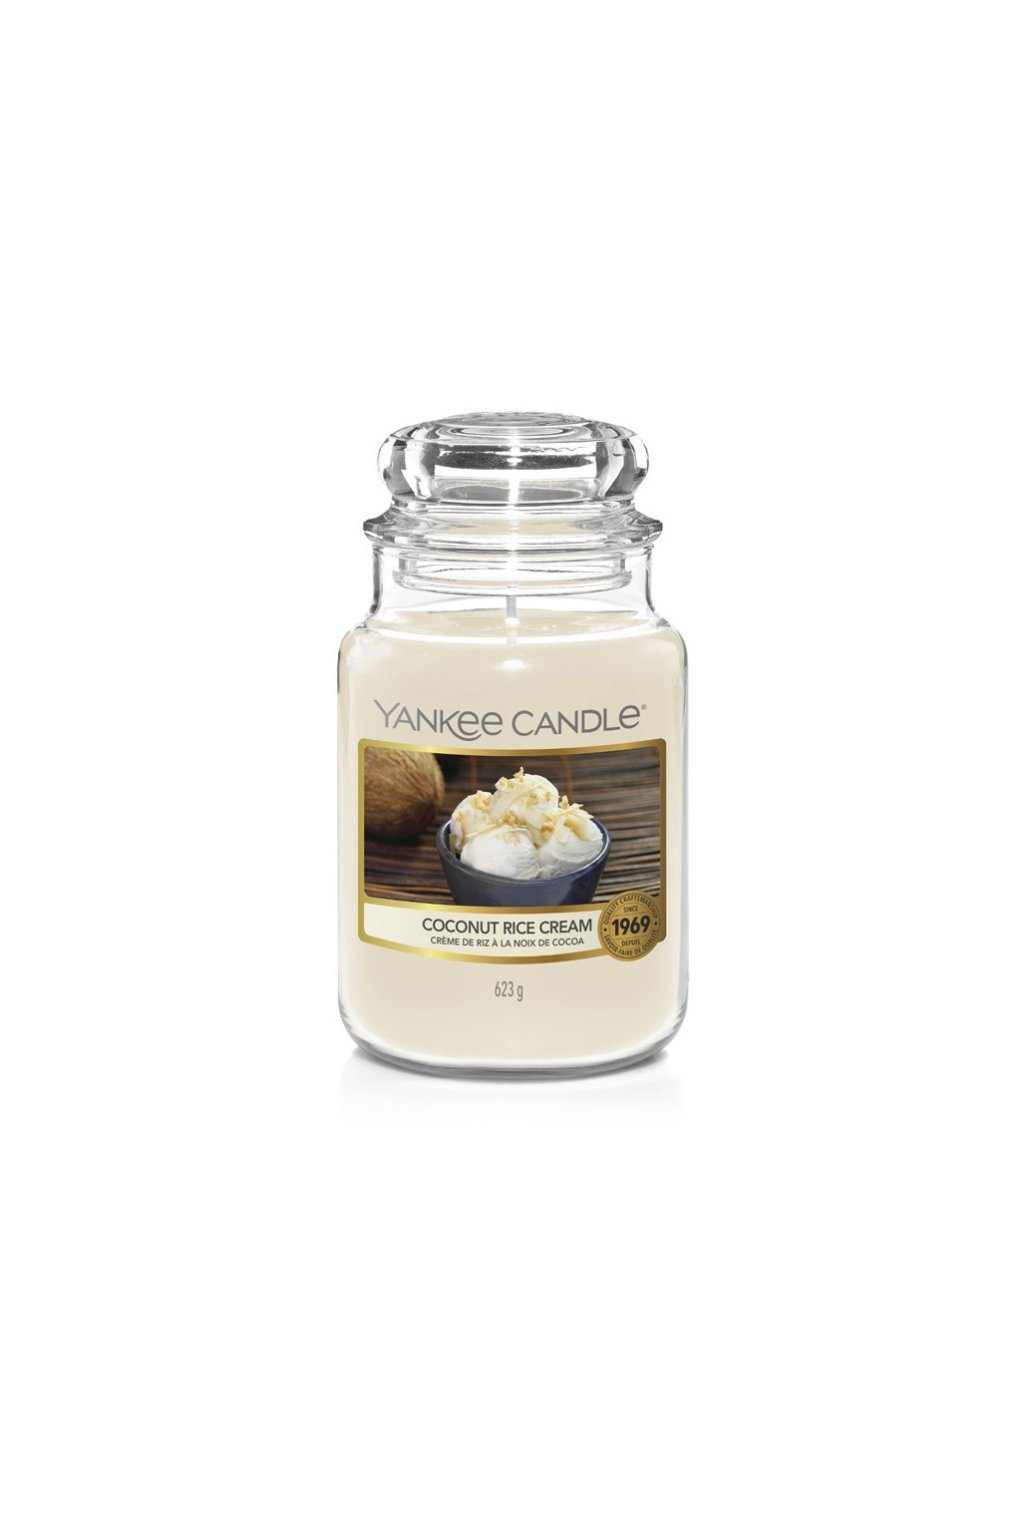 Yankee Candle Coconut Rice Cream 623g